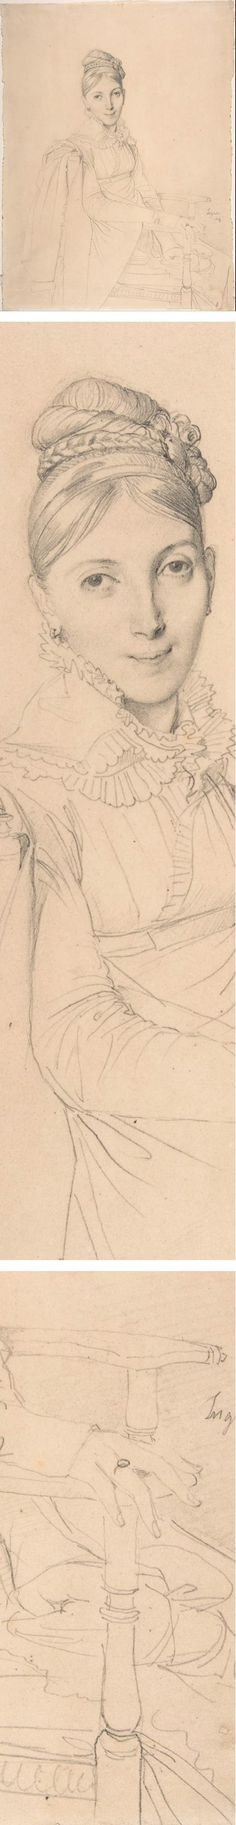 Portrait of a Seated Lady, Jean Auguste Dominique Ingres, pencil portrait drawing Thursday, August 7, 2014 Eye Candy for Today: Ingres pencil portrait